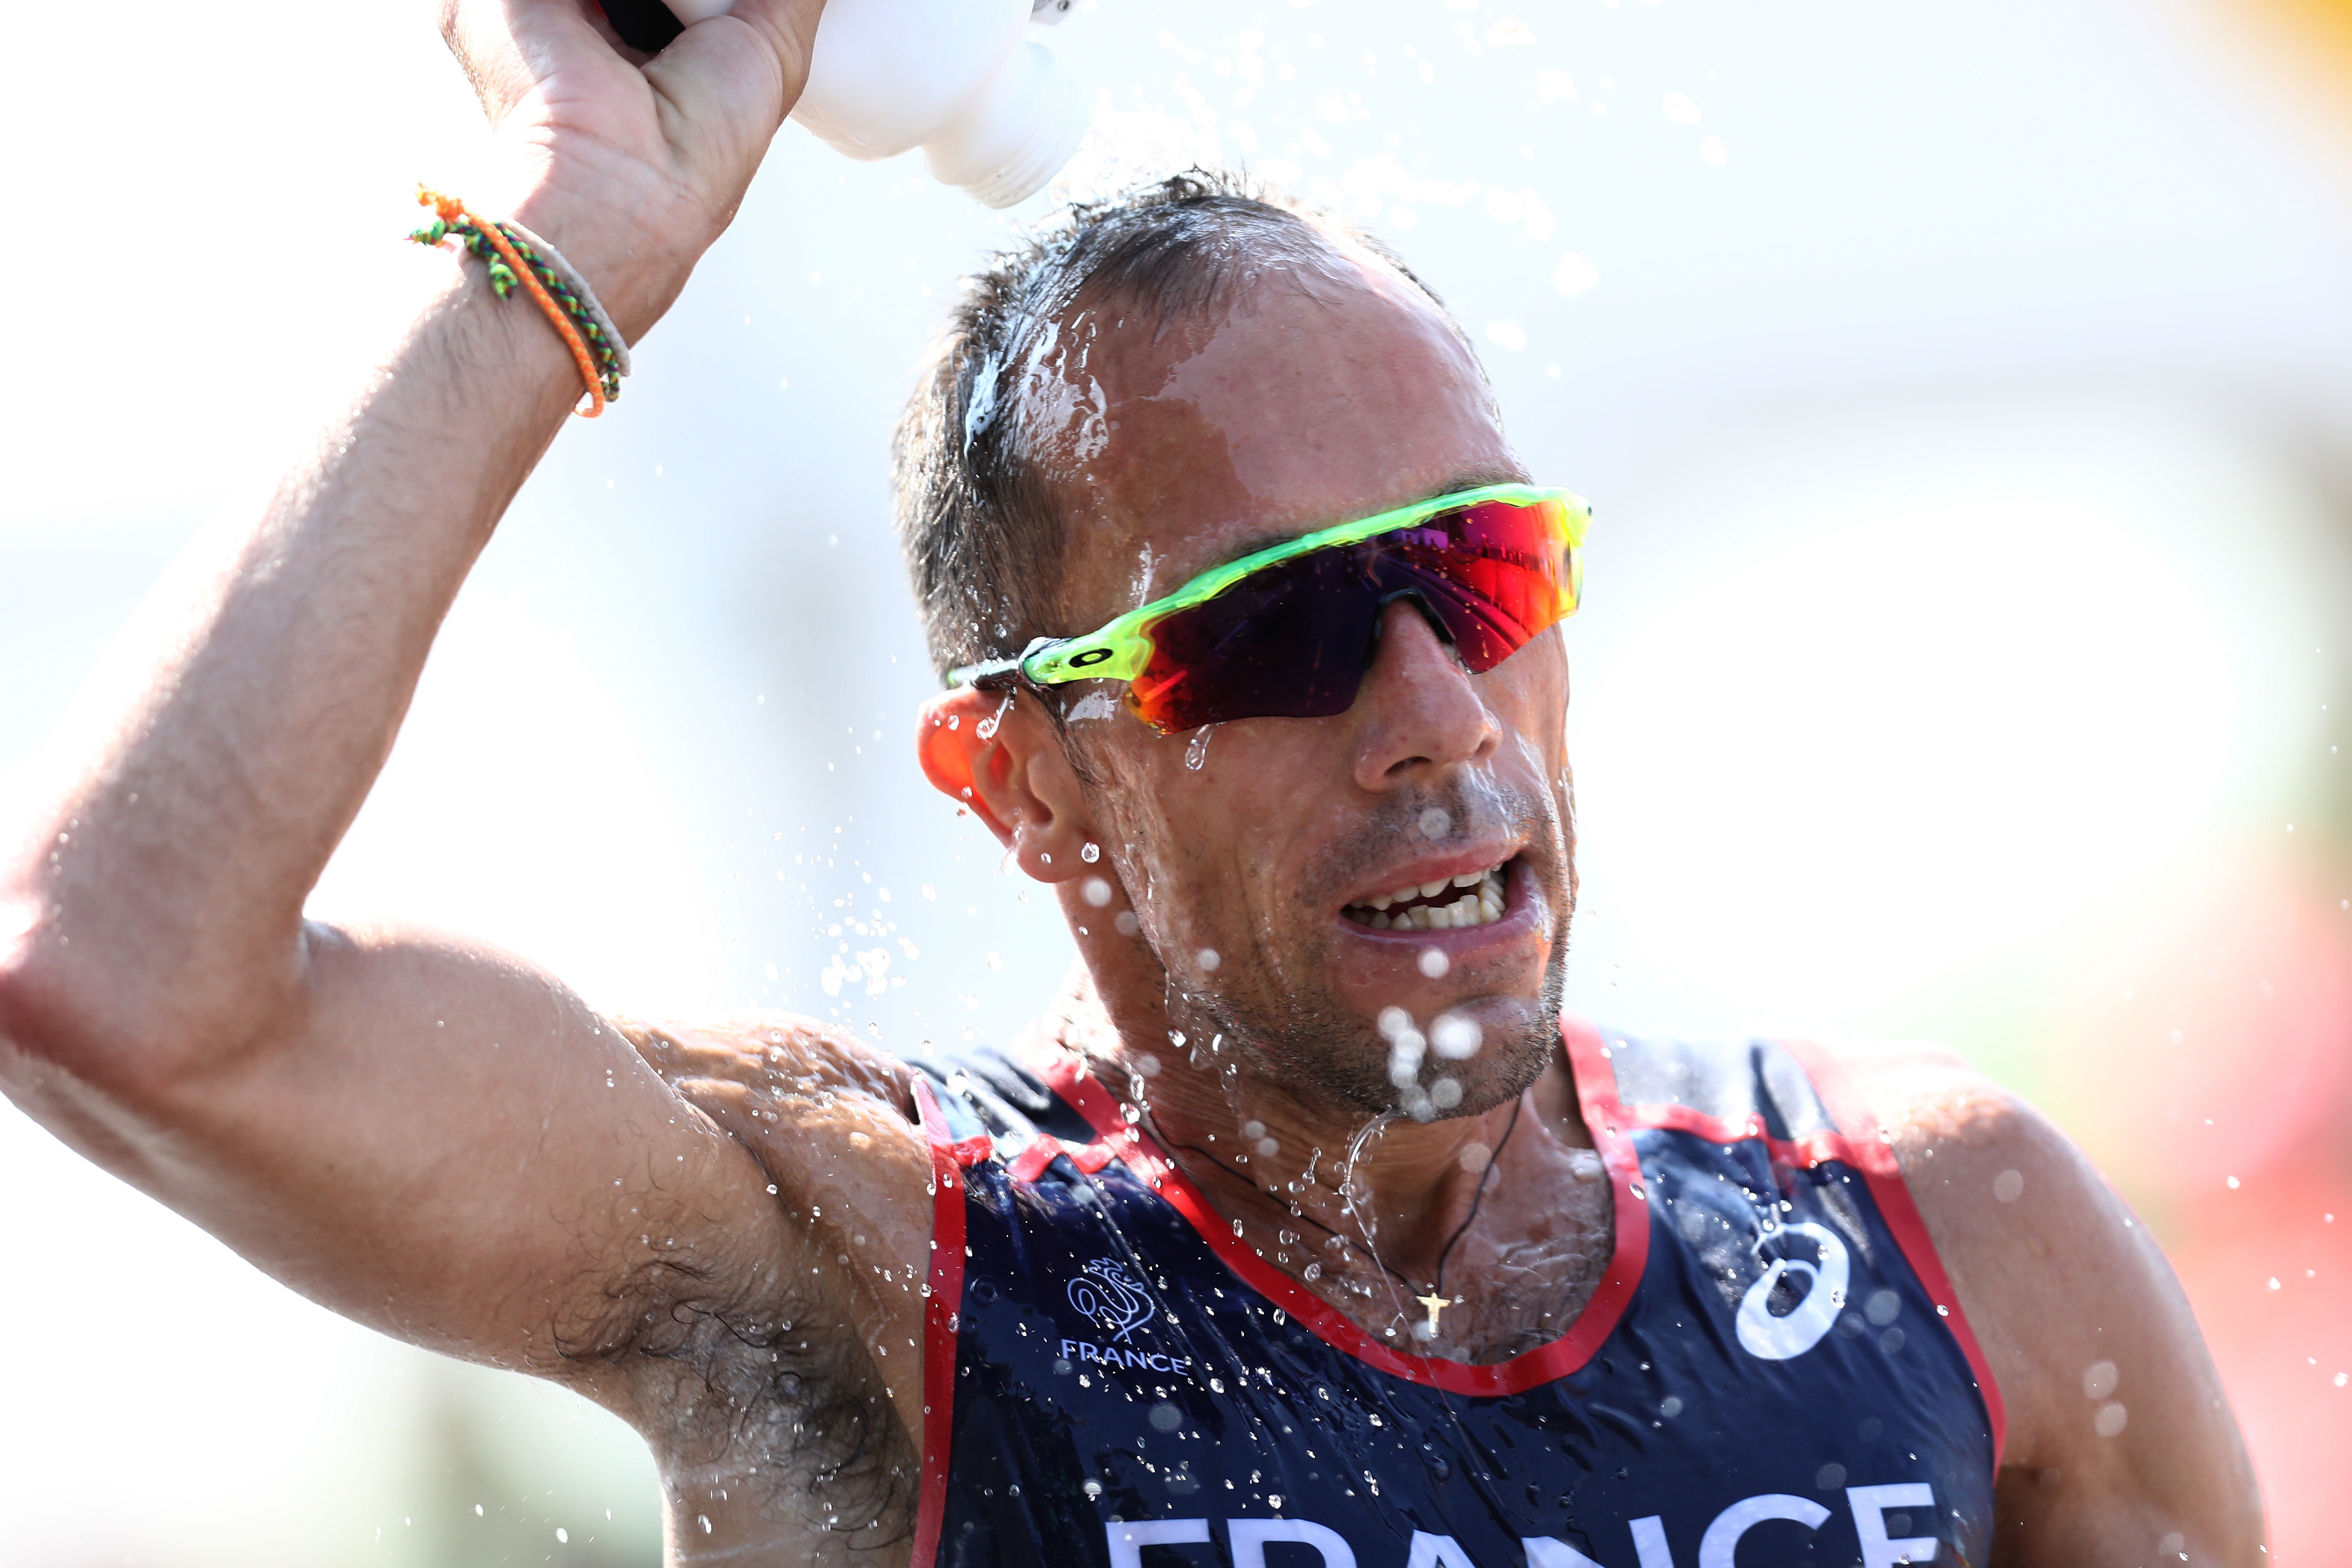 No matter what, Yohann Diniz of France wasn't going to let the heat in Rio stop him.